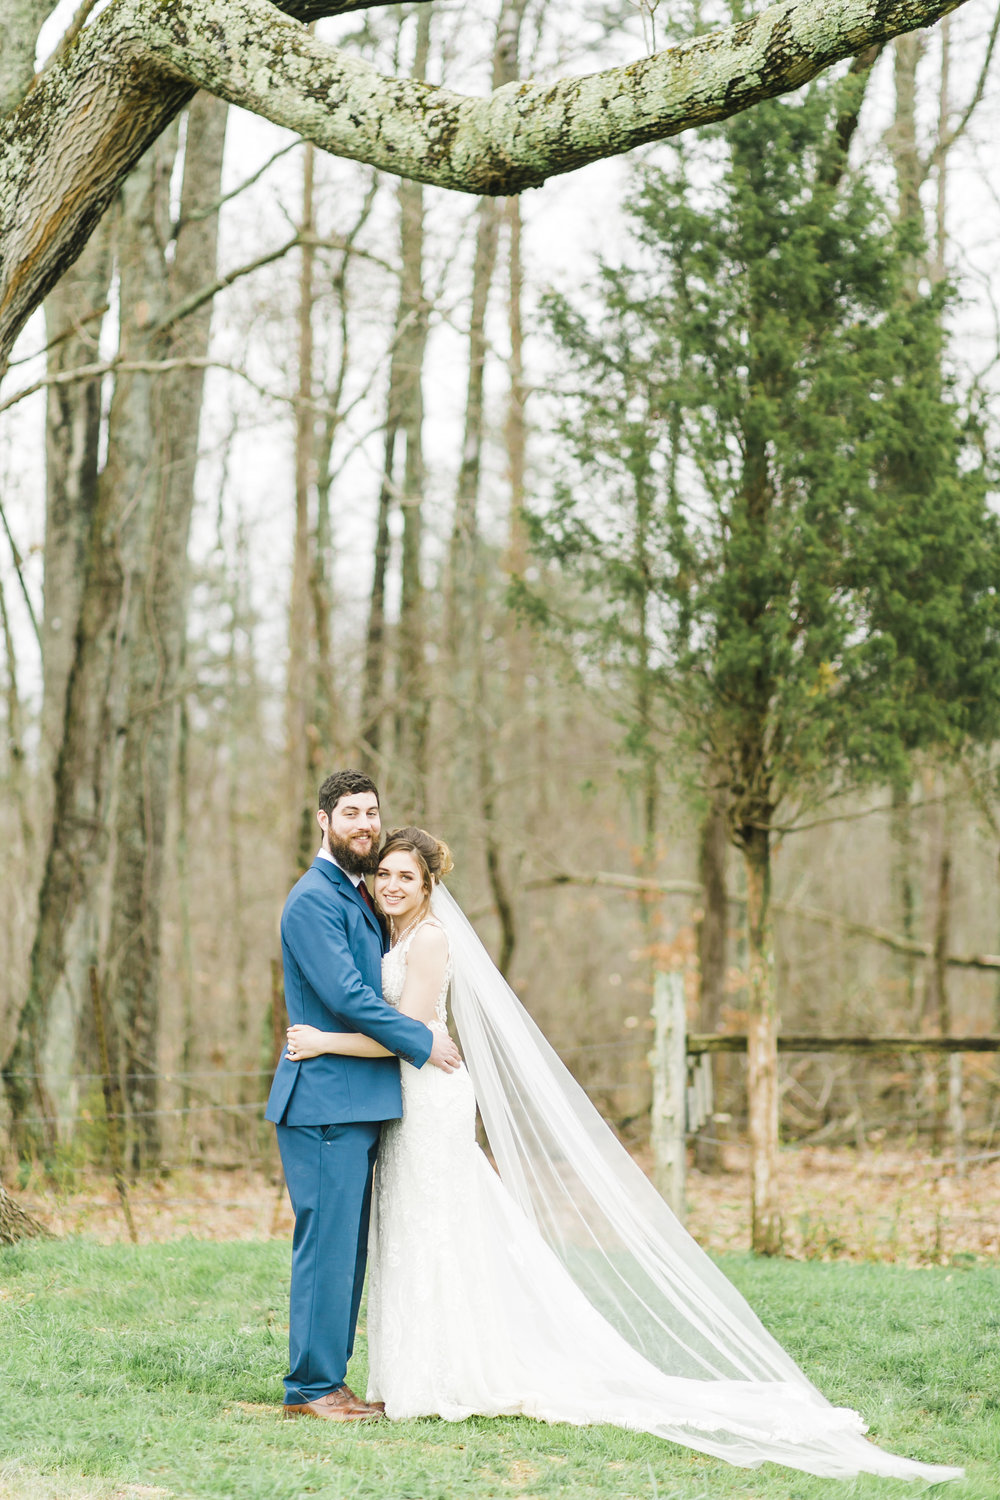 Heartland Meadows Knoxville Spring Wedding Winx Photo